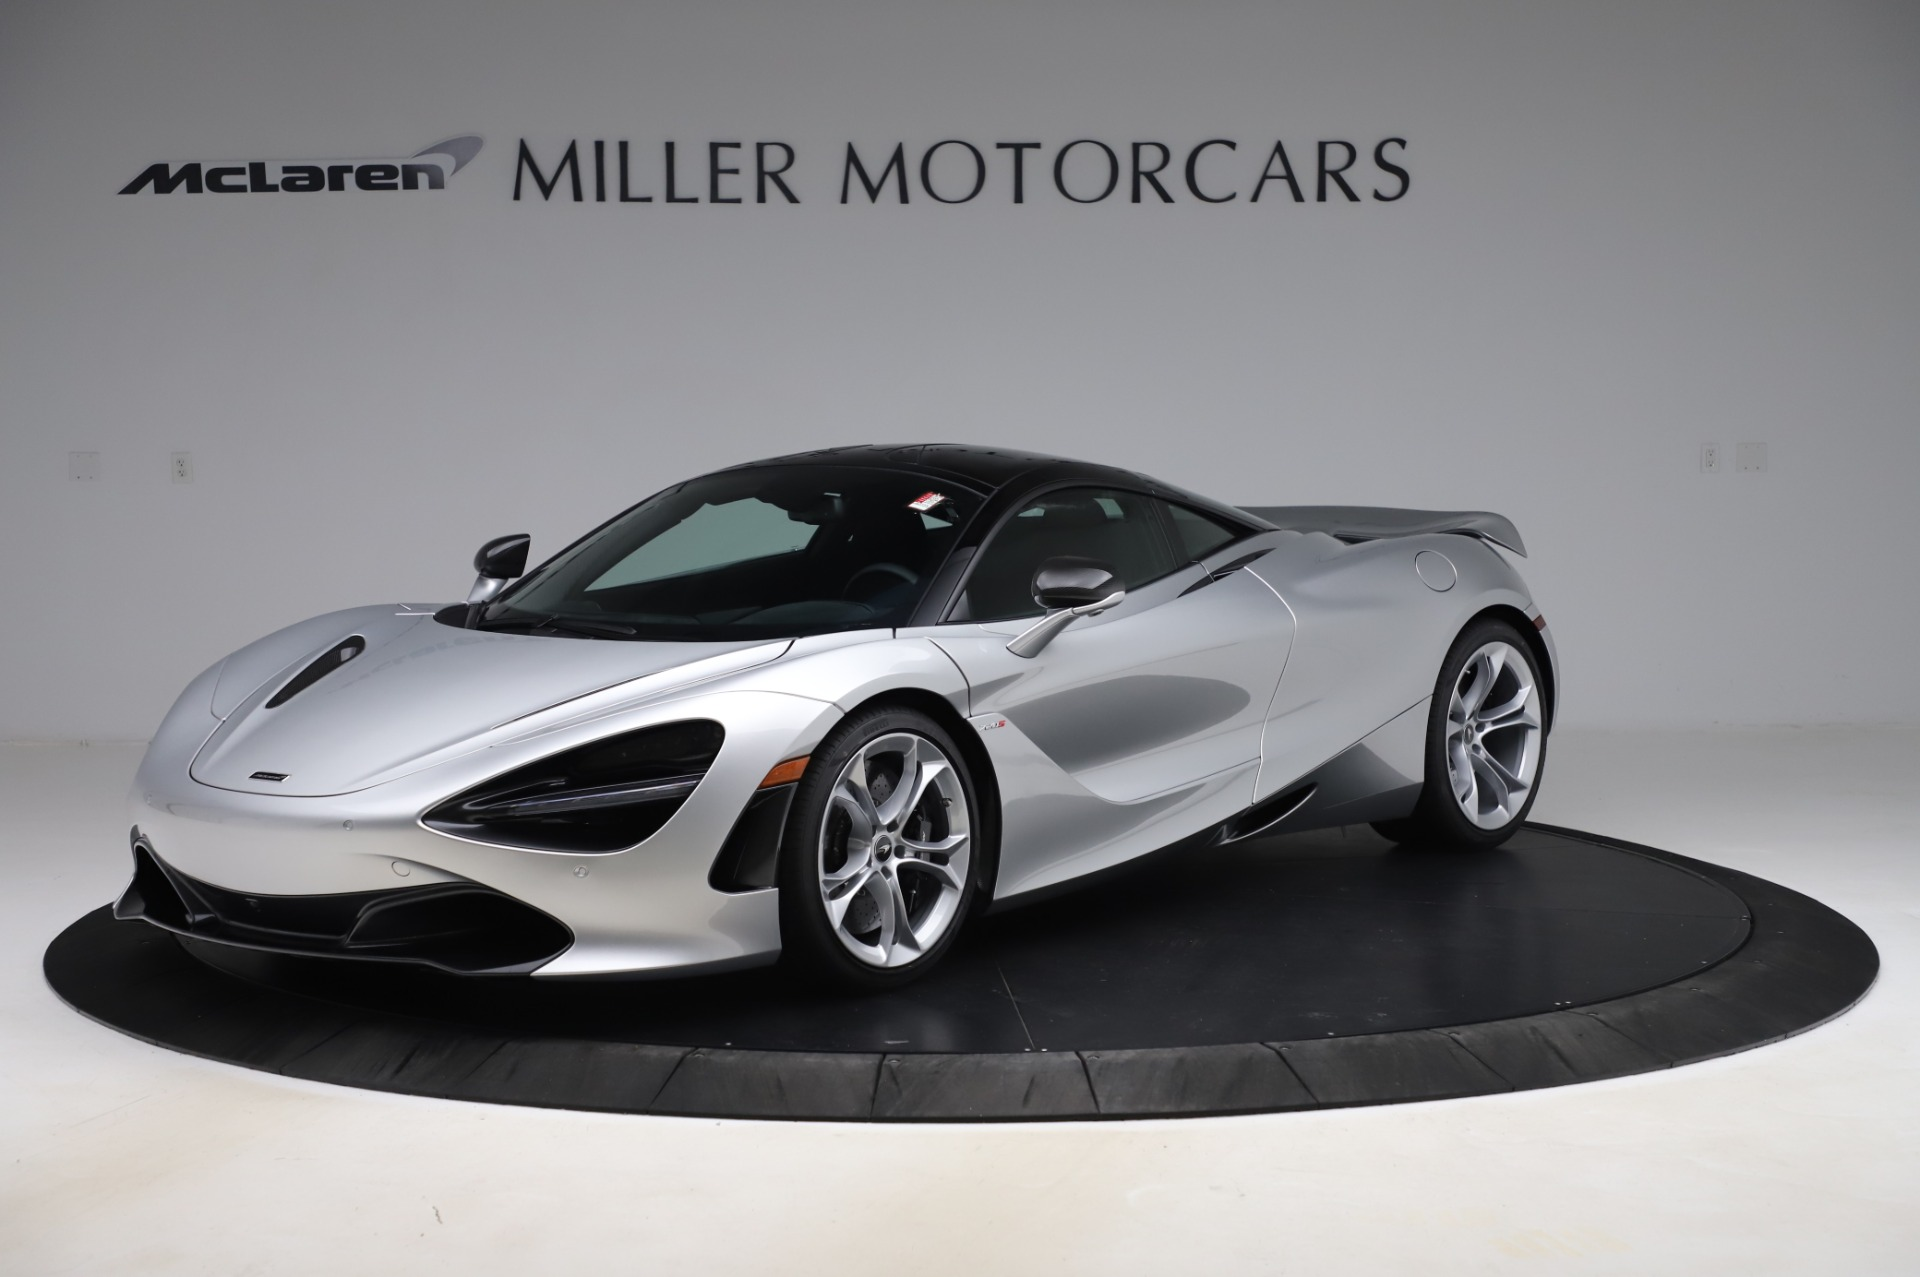 New 2020 McLaren 720S Coupe for sale $347,550 at Pagani of Greenwich in Greenwich CT 06830 1